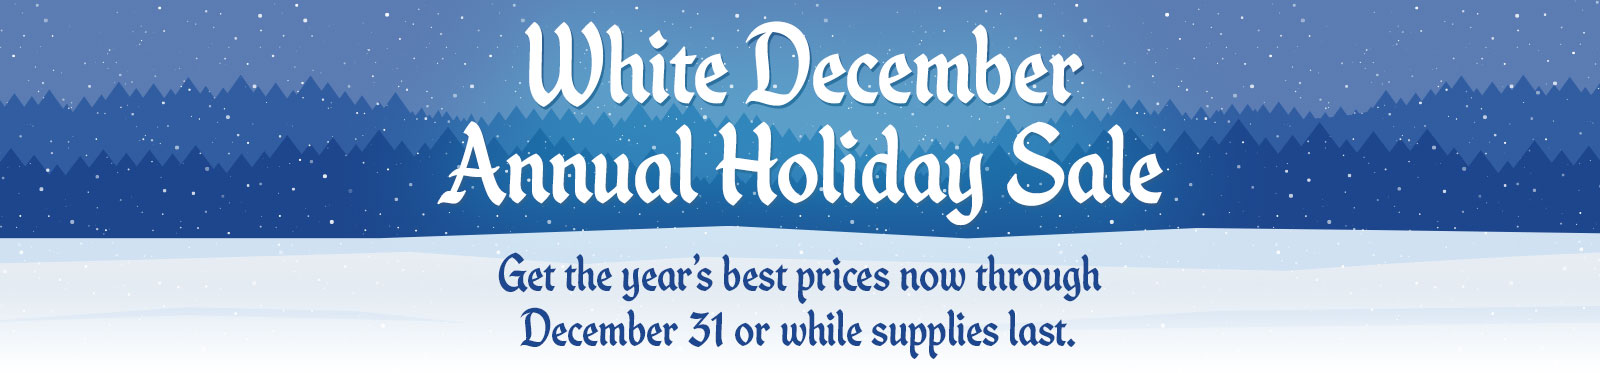 White December Annual Holiday Sale